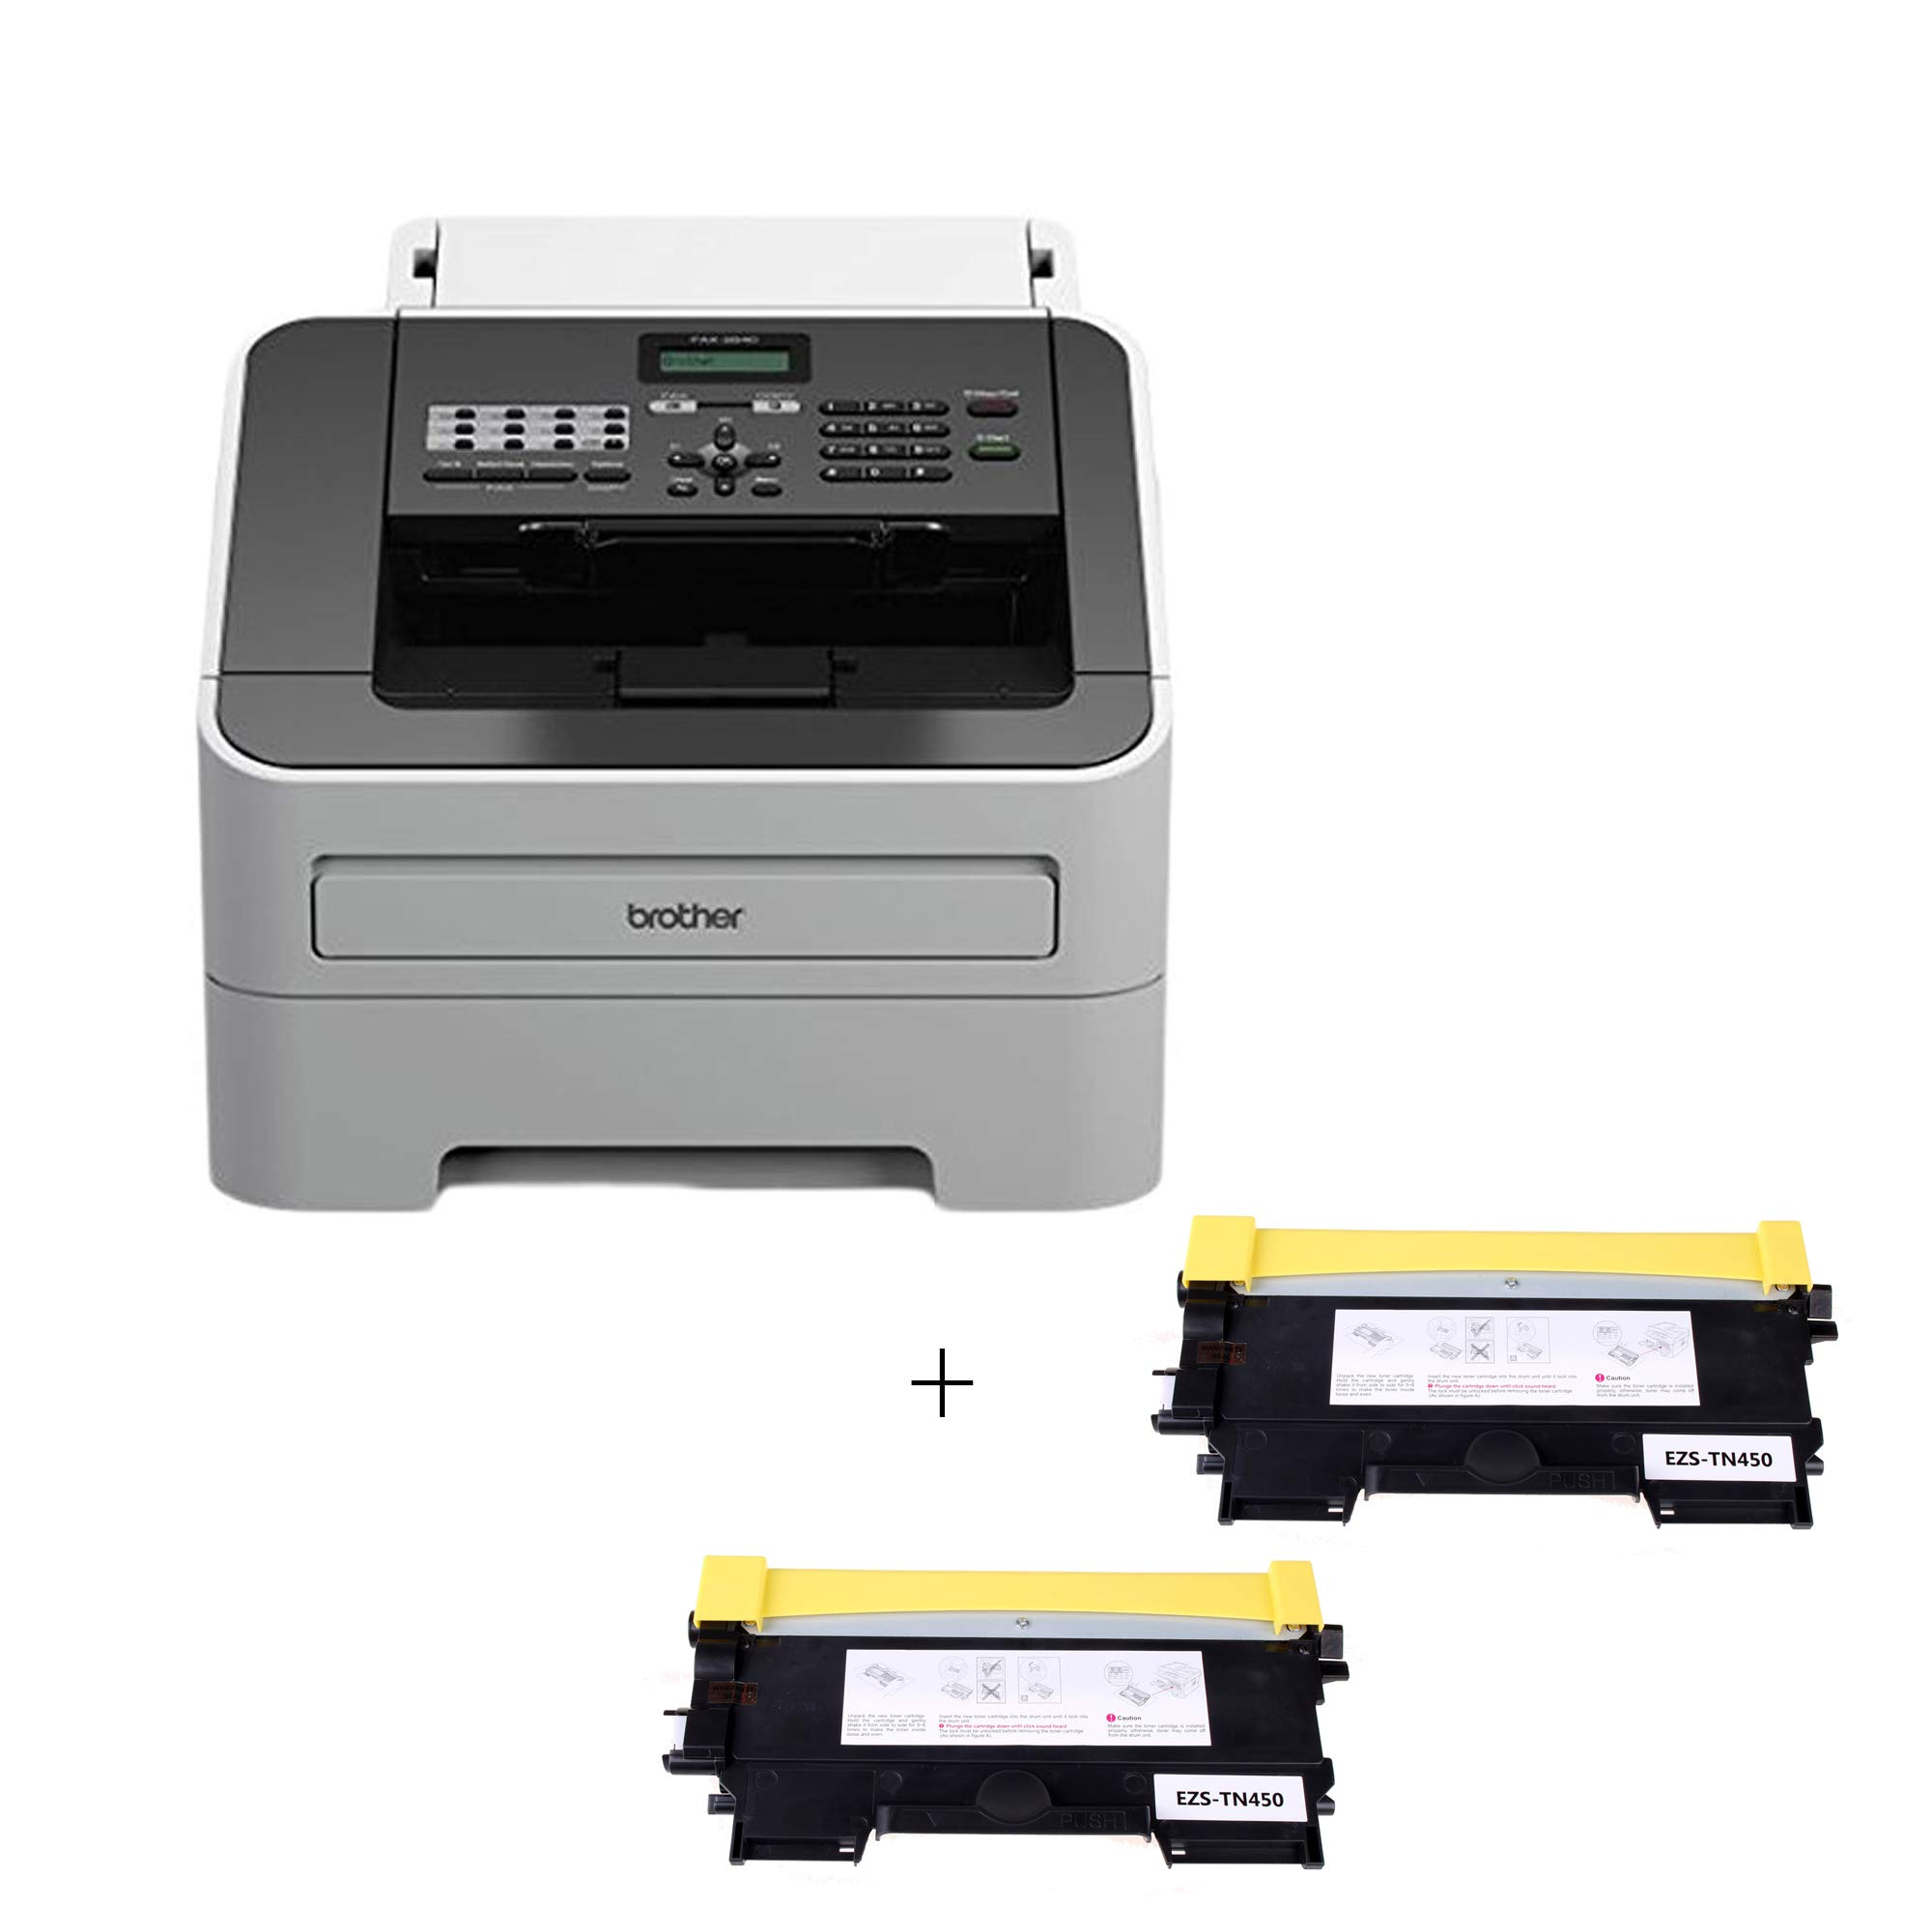 Brother FAX2840 intelliFAX-2840 Mono Laser High Speed Copy/Fax/Print Machine (1 ea FAX2840 + 2 Pack TN450 Toners)